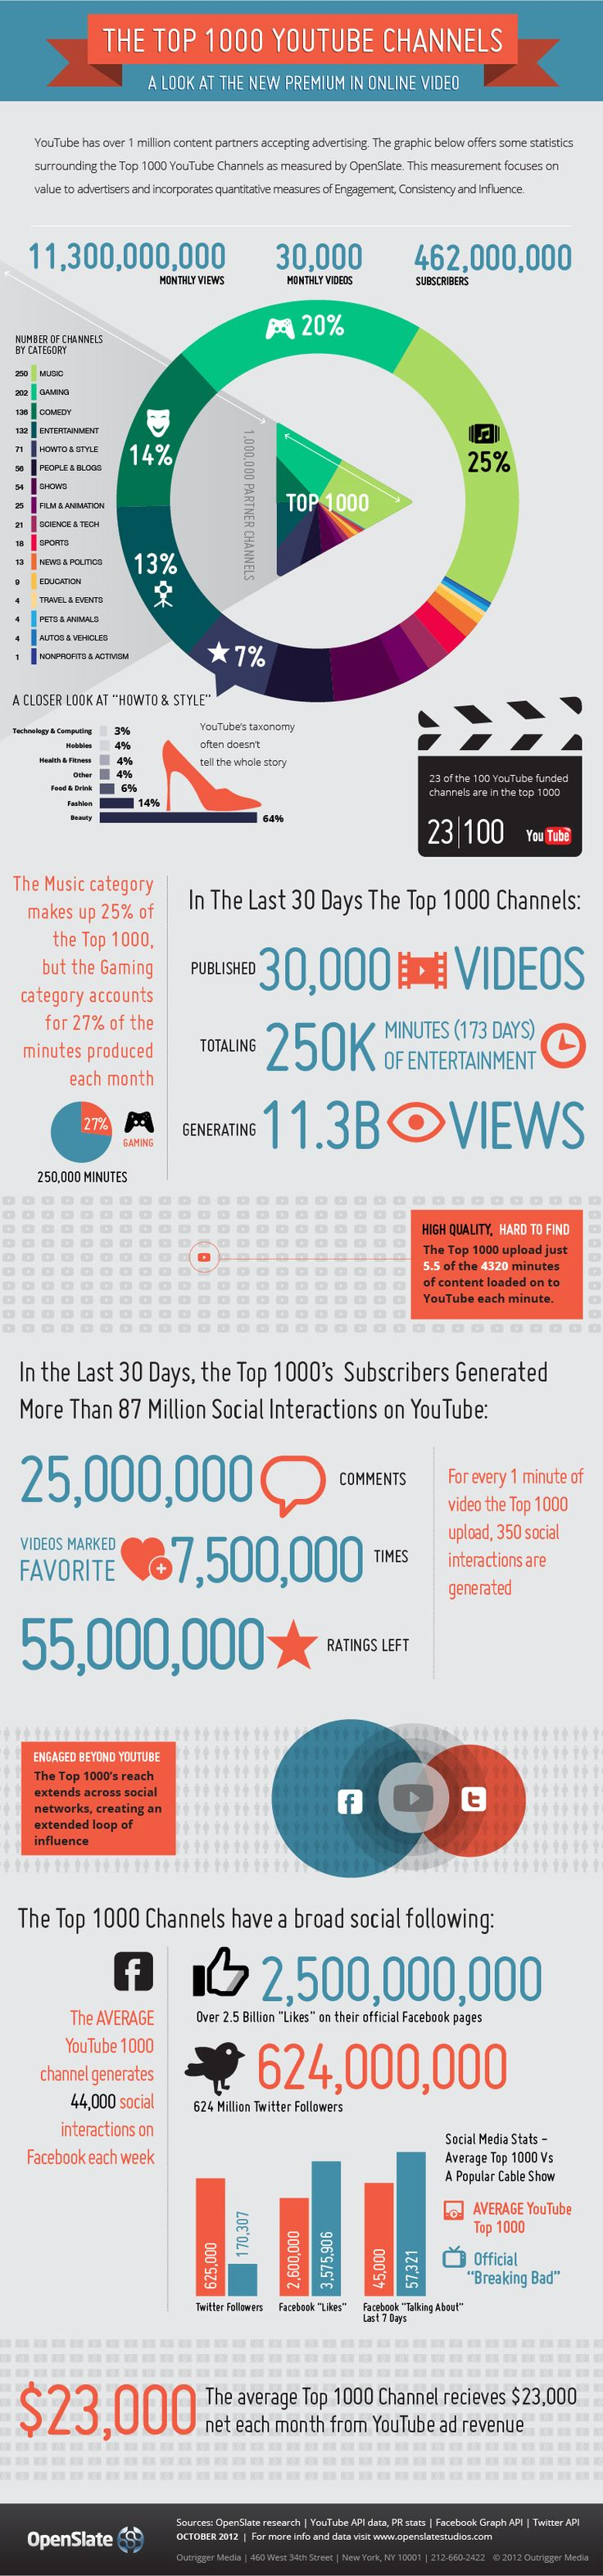 Tumblr Is For Fashion, You Tube Is For Music - Infographic